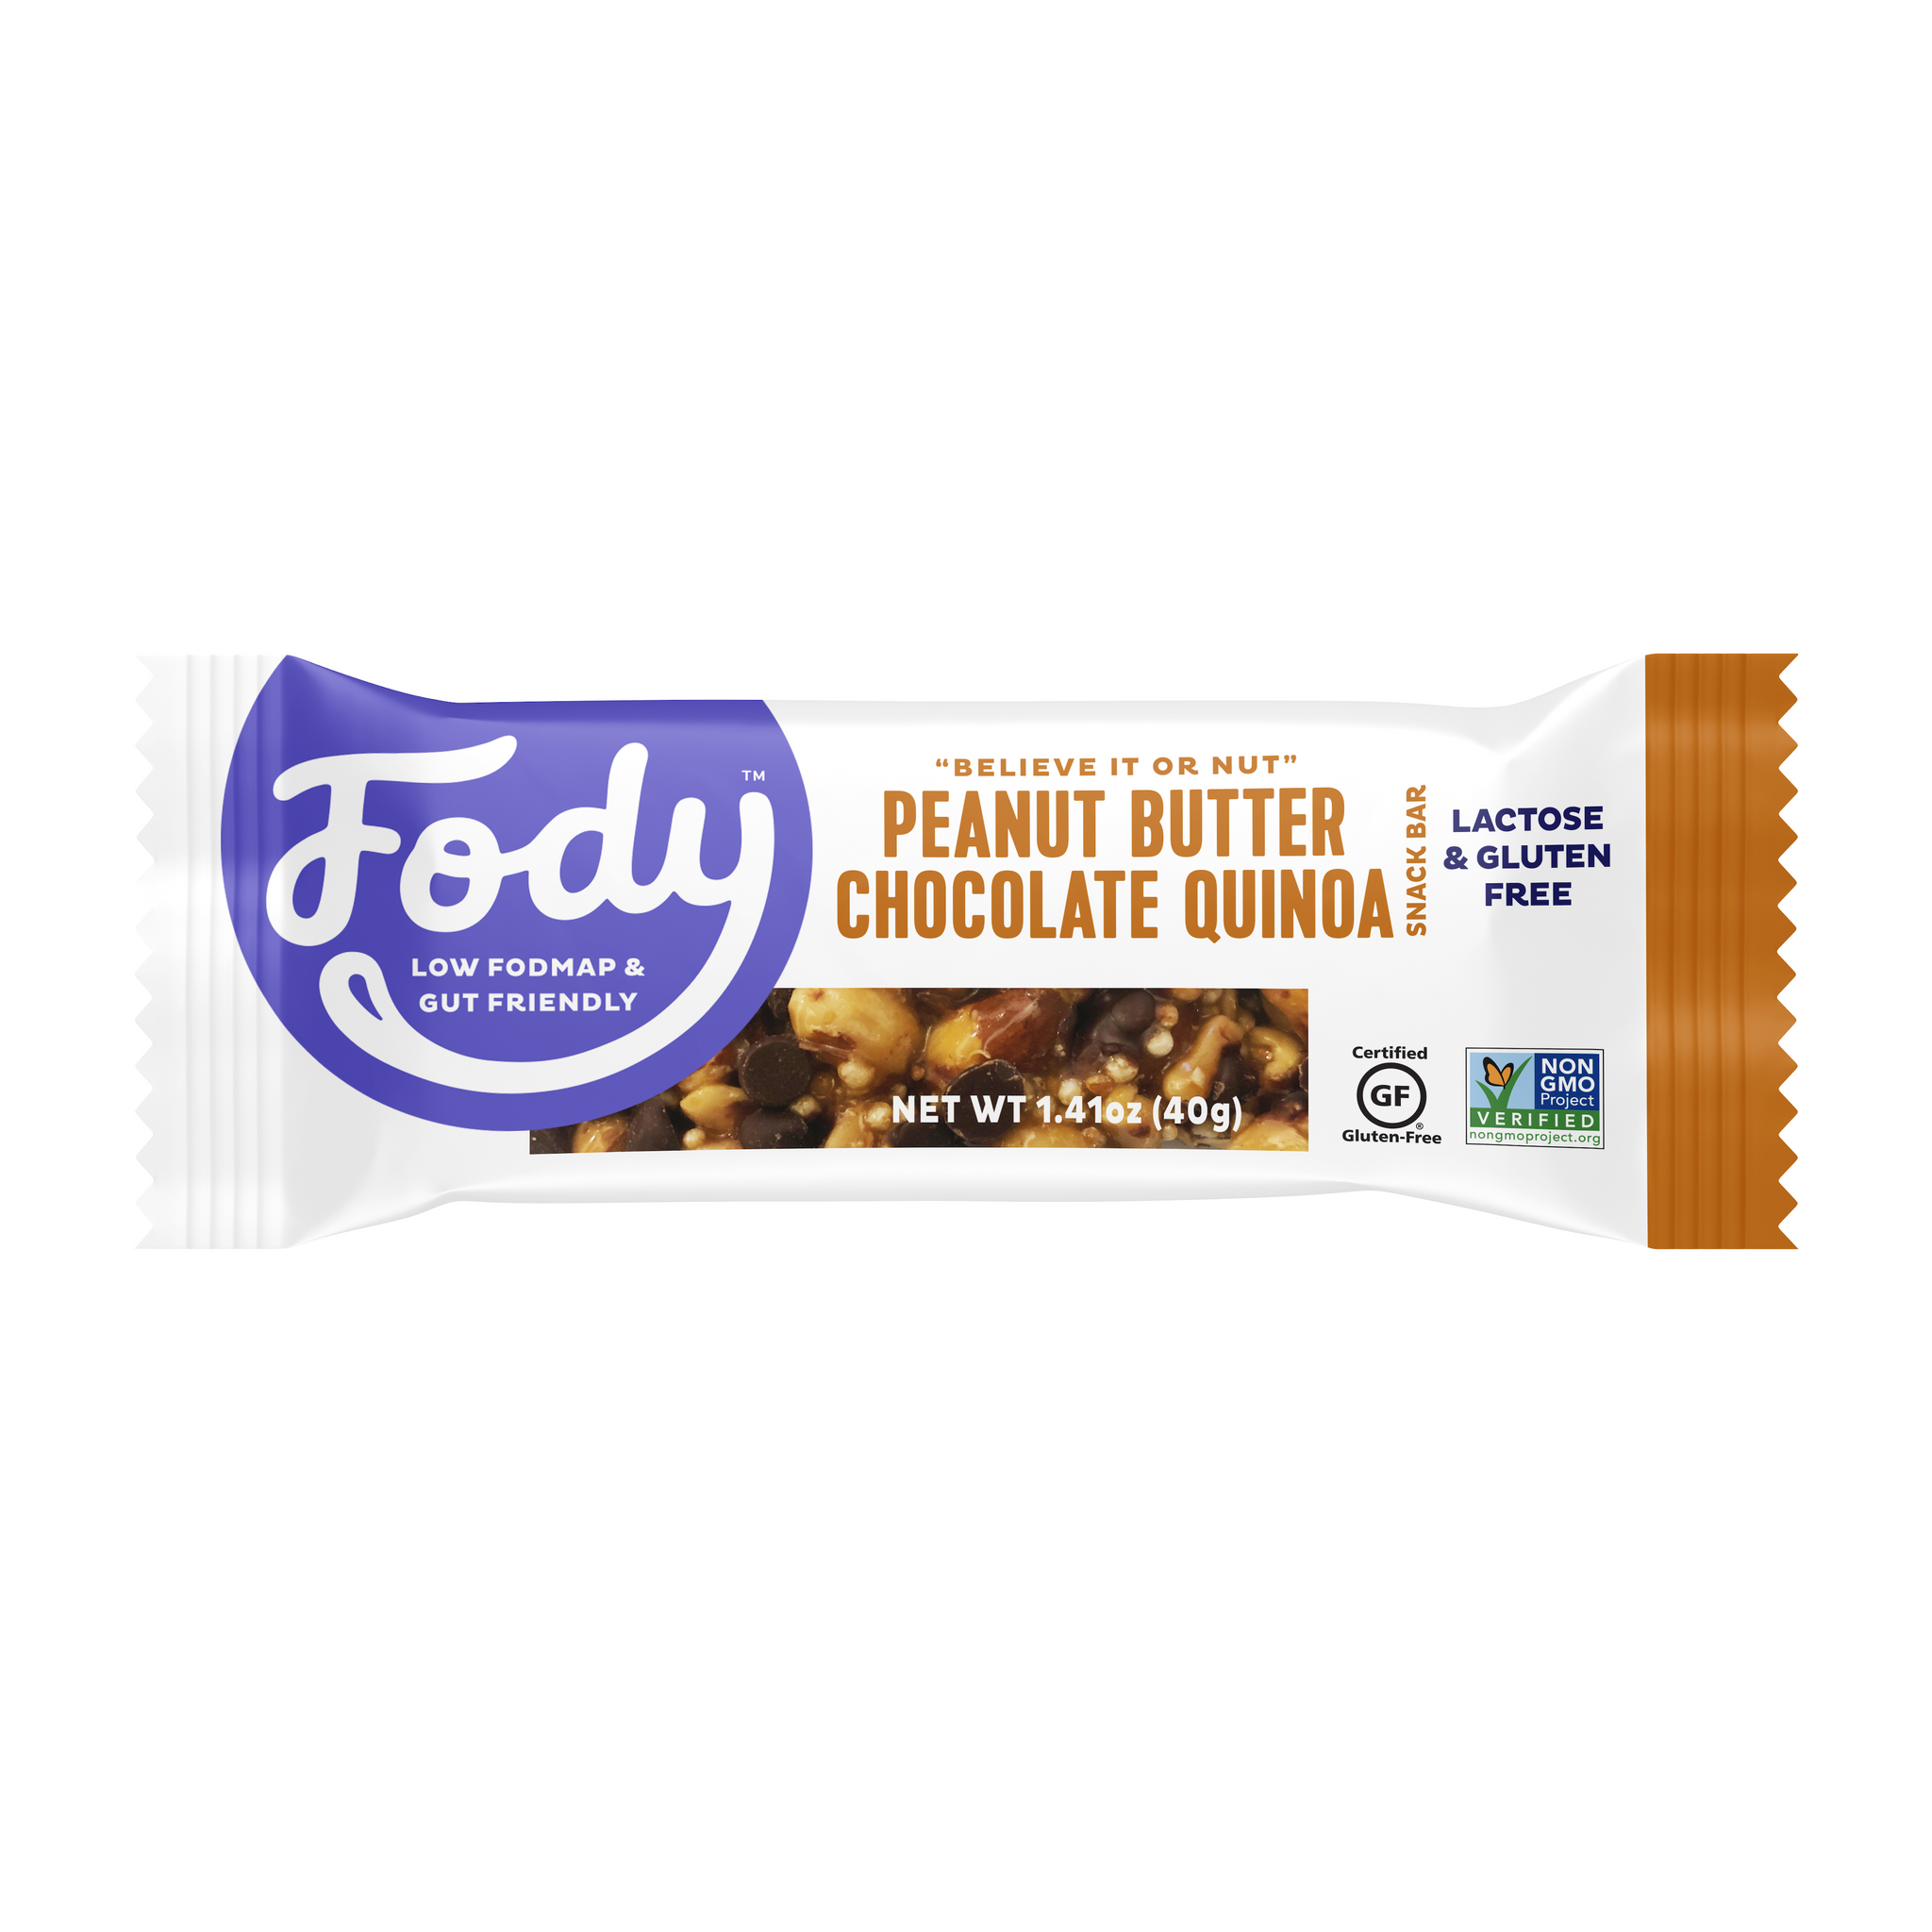 Low FODMAP <br><b><big>Peanut Butter <br>Chocolate Quinoa Bars </big></b><br>(Box of 12) <br><small>Lactose & Gluten Free</small>